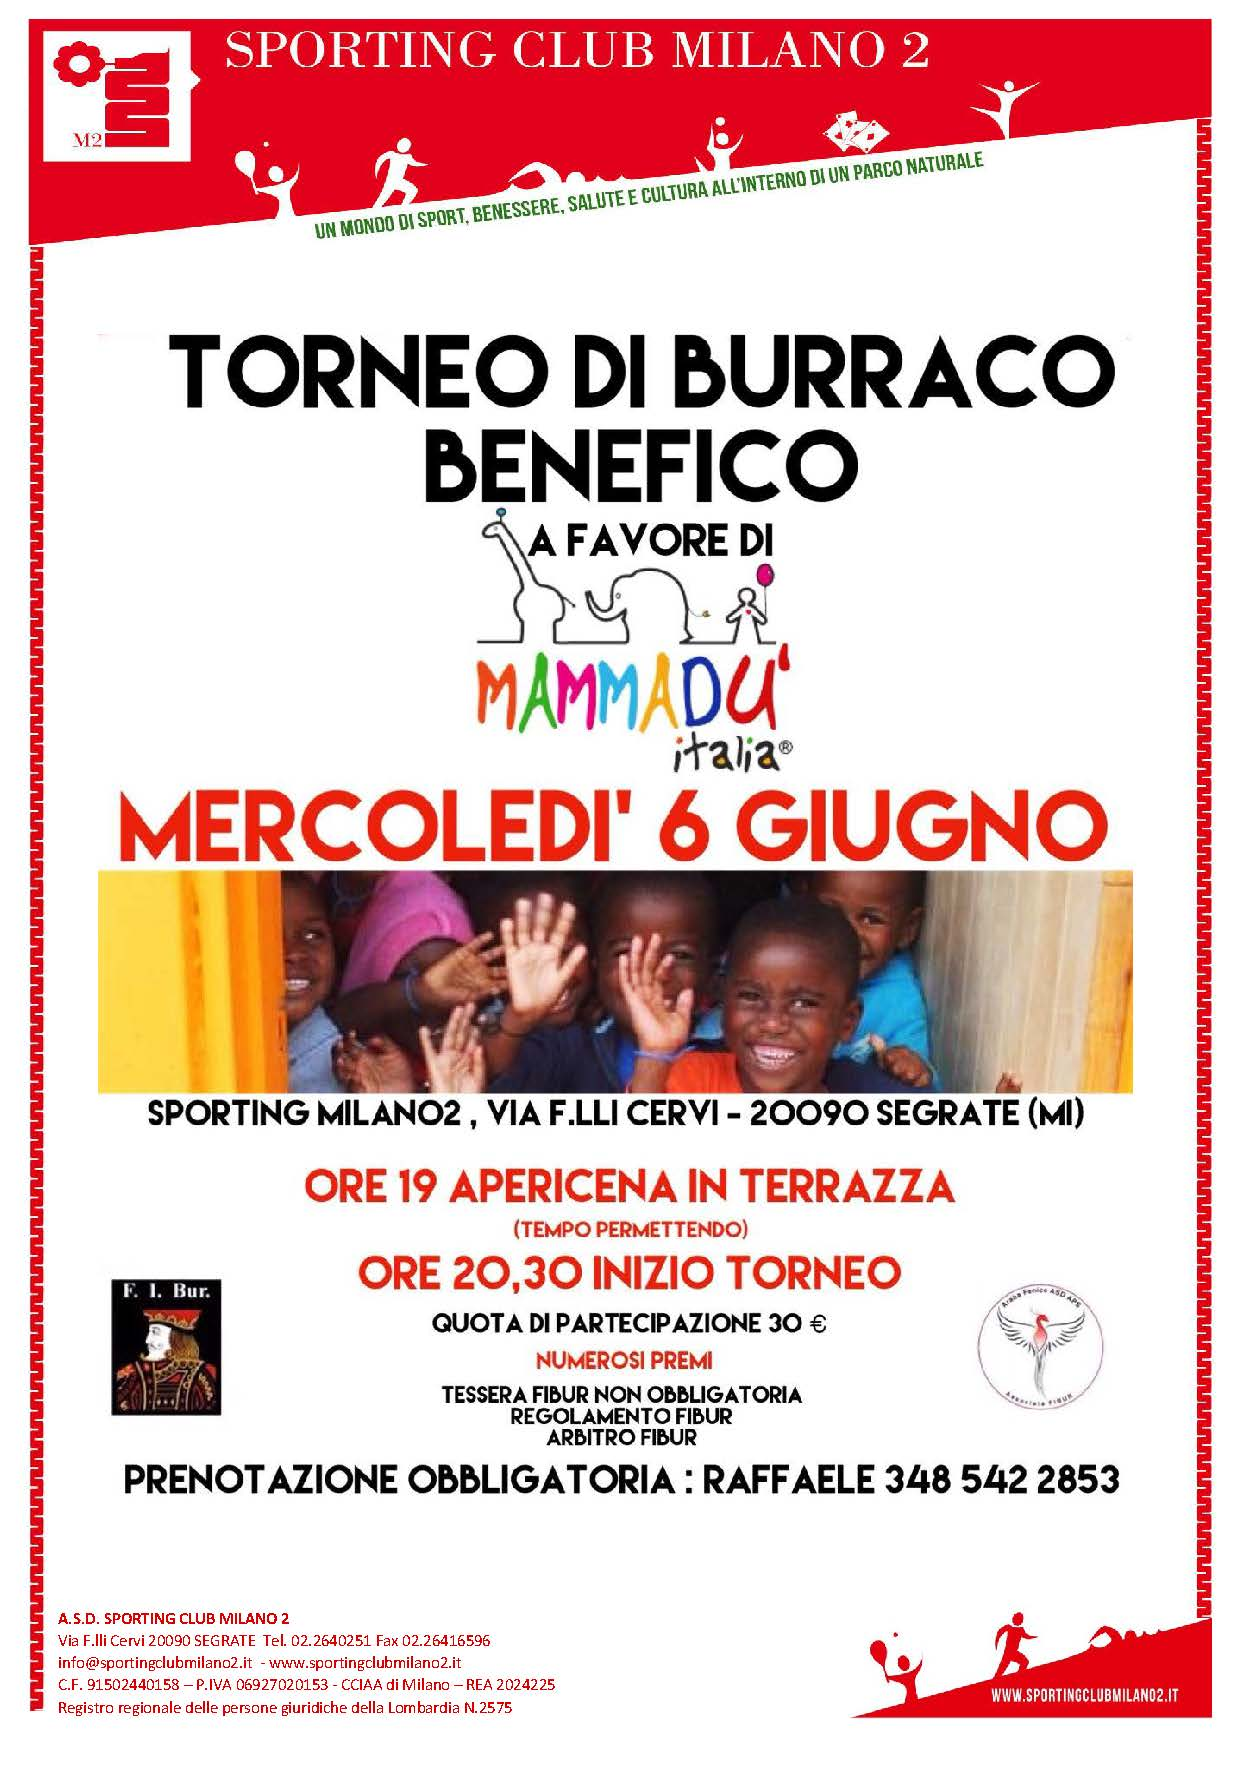 TORNEO DI BURRACO BENEFICO